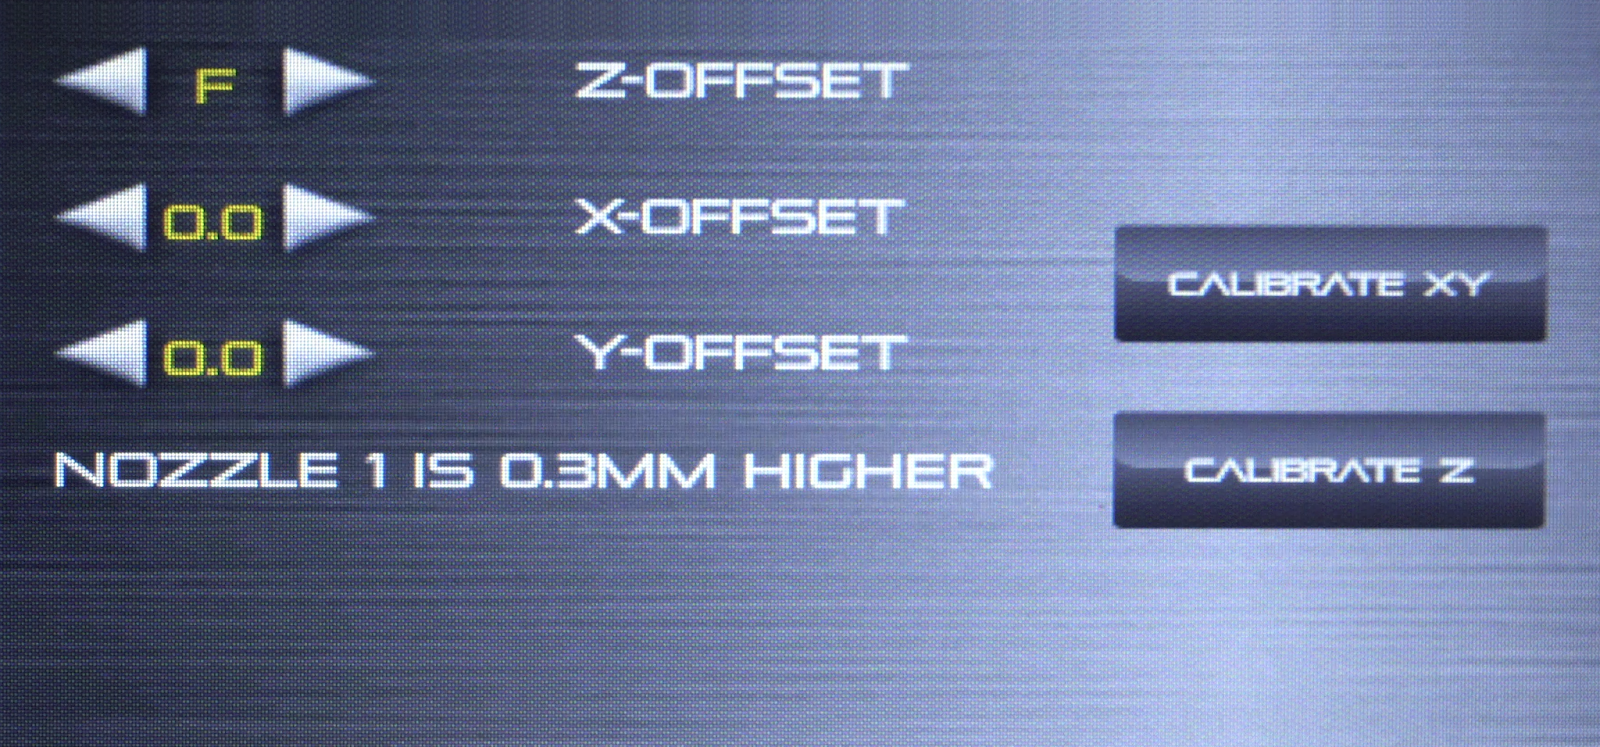 After running the calibration process, the screen will display the offset value between the two nozzles.